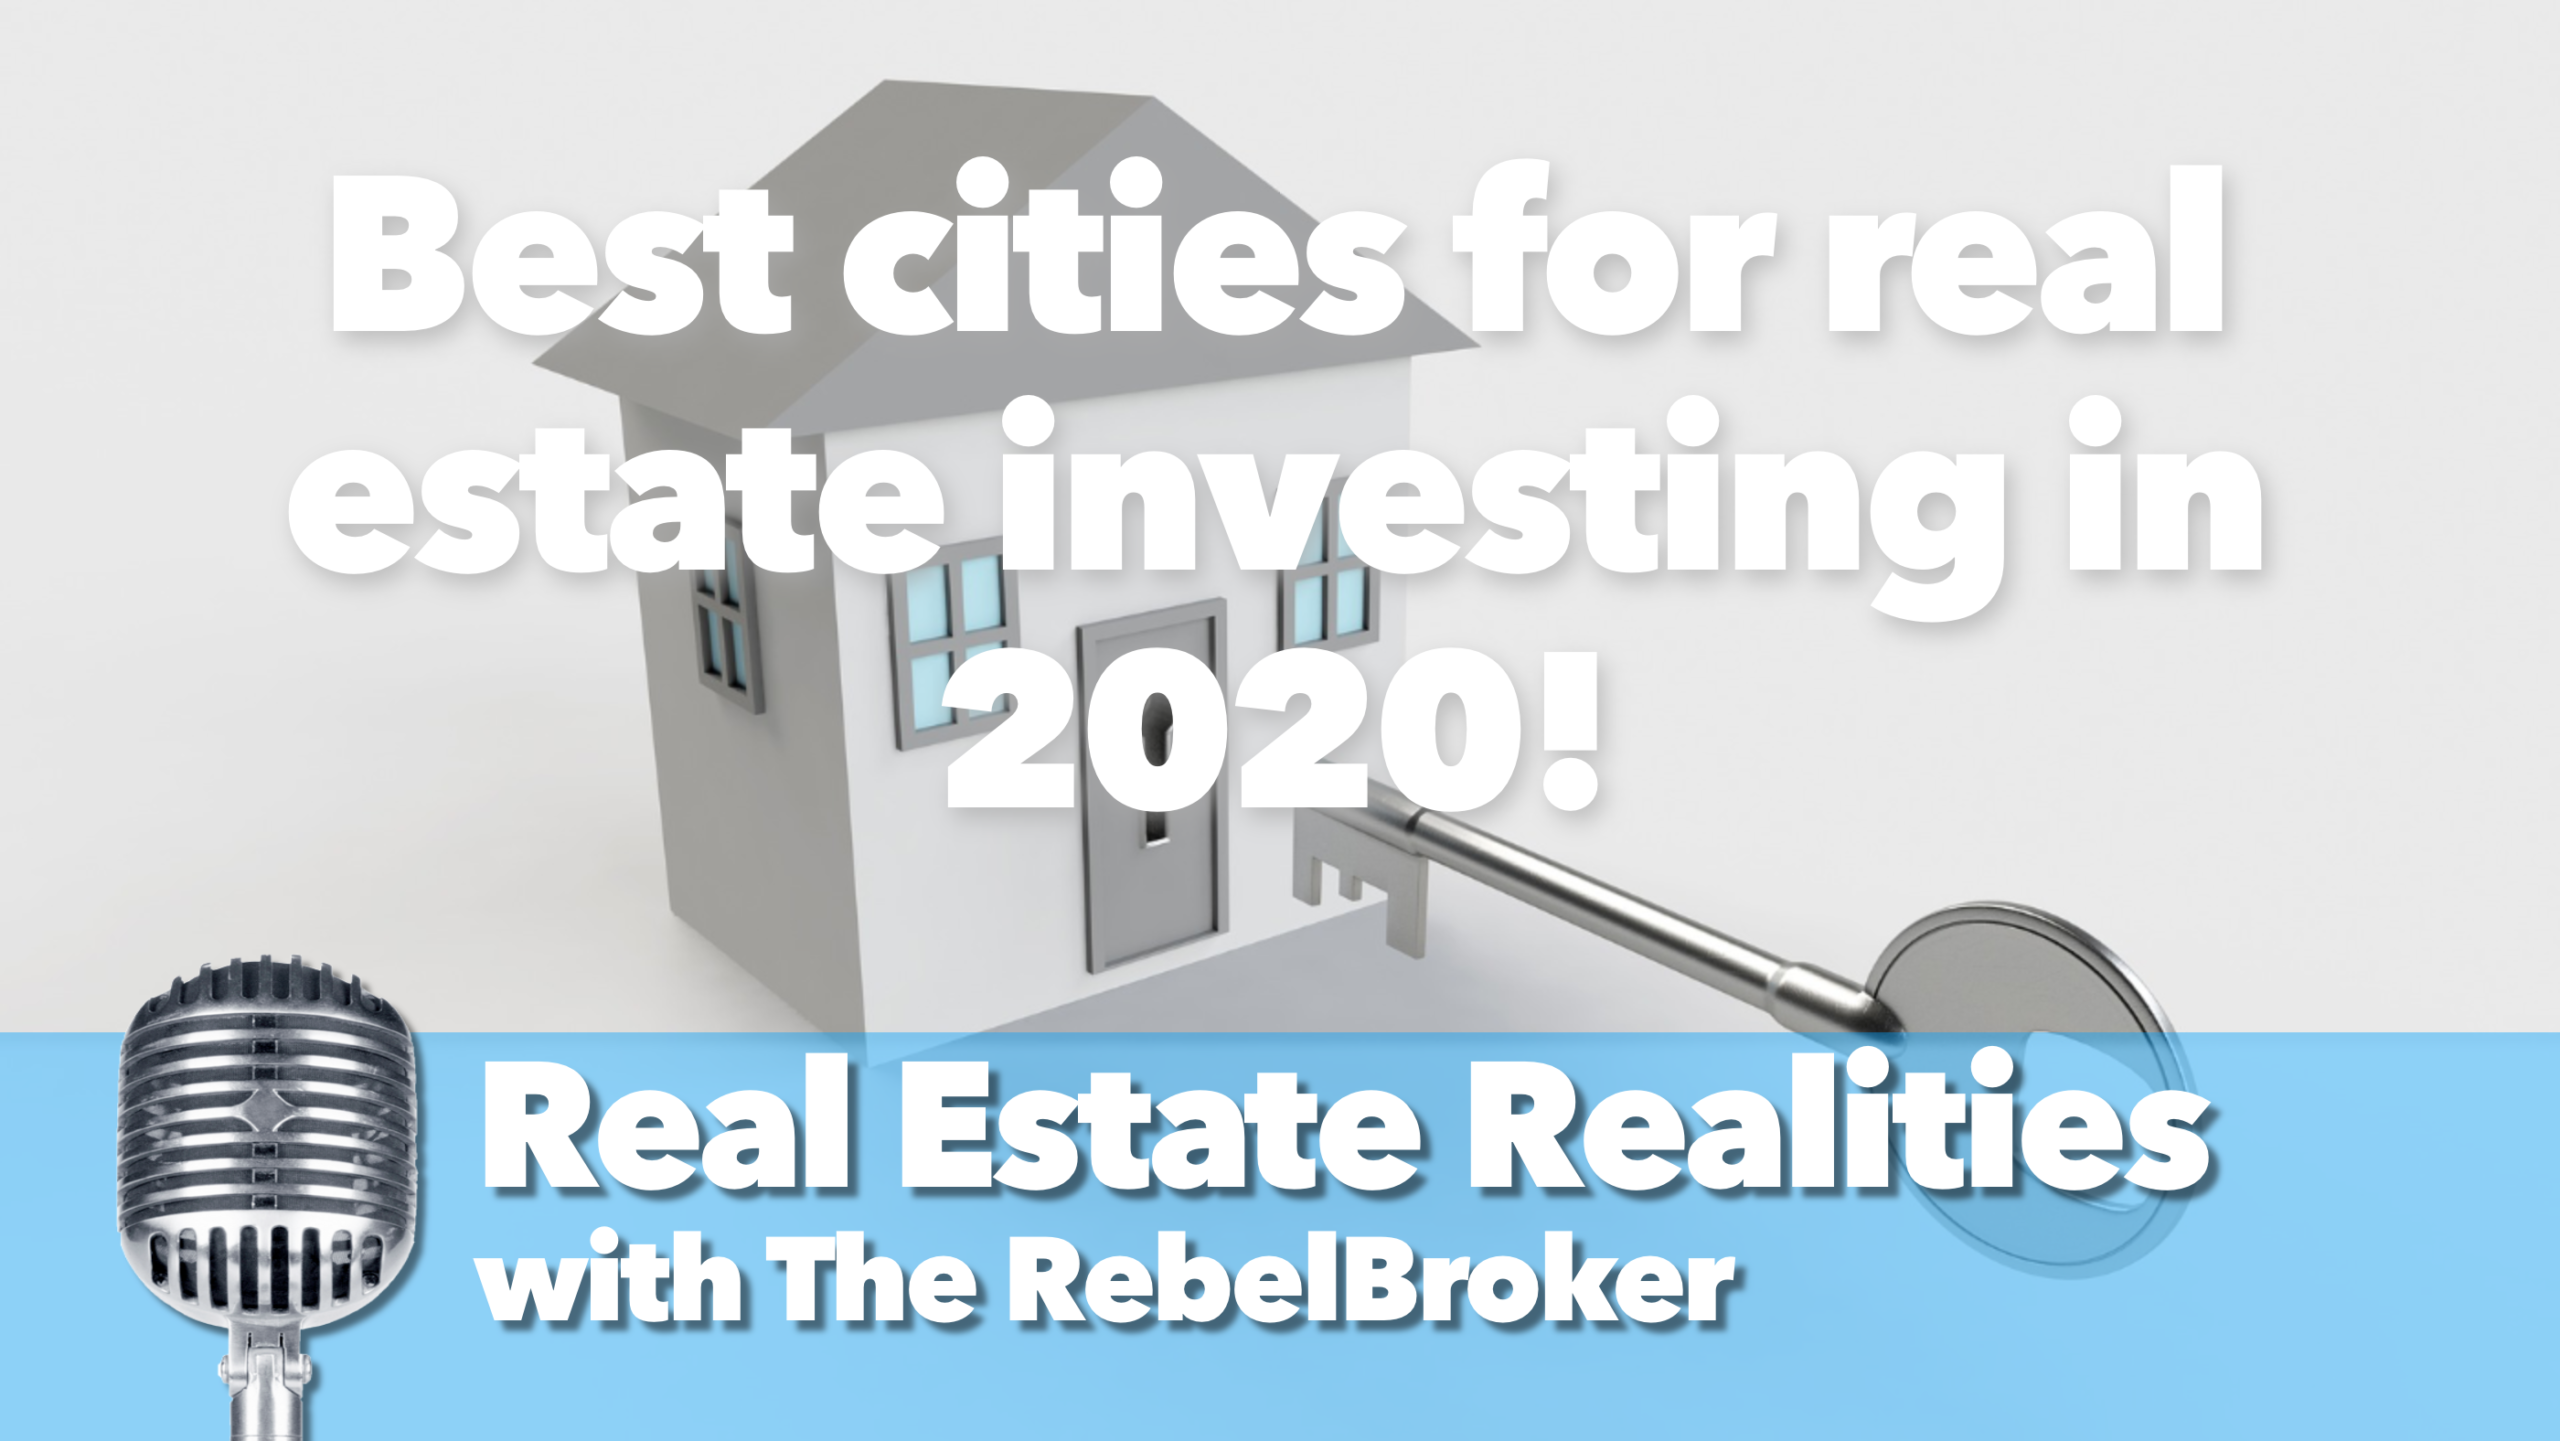 Best cities for real estate investing in 2020!